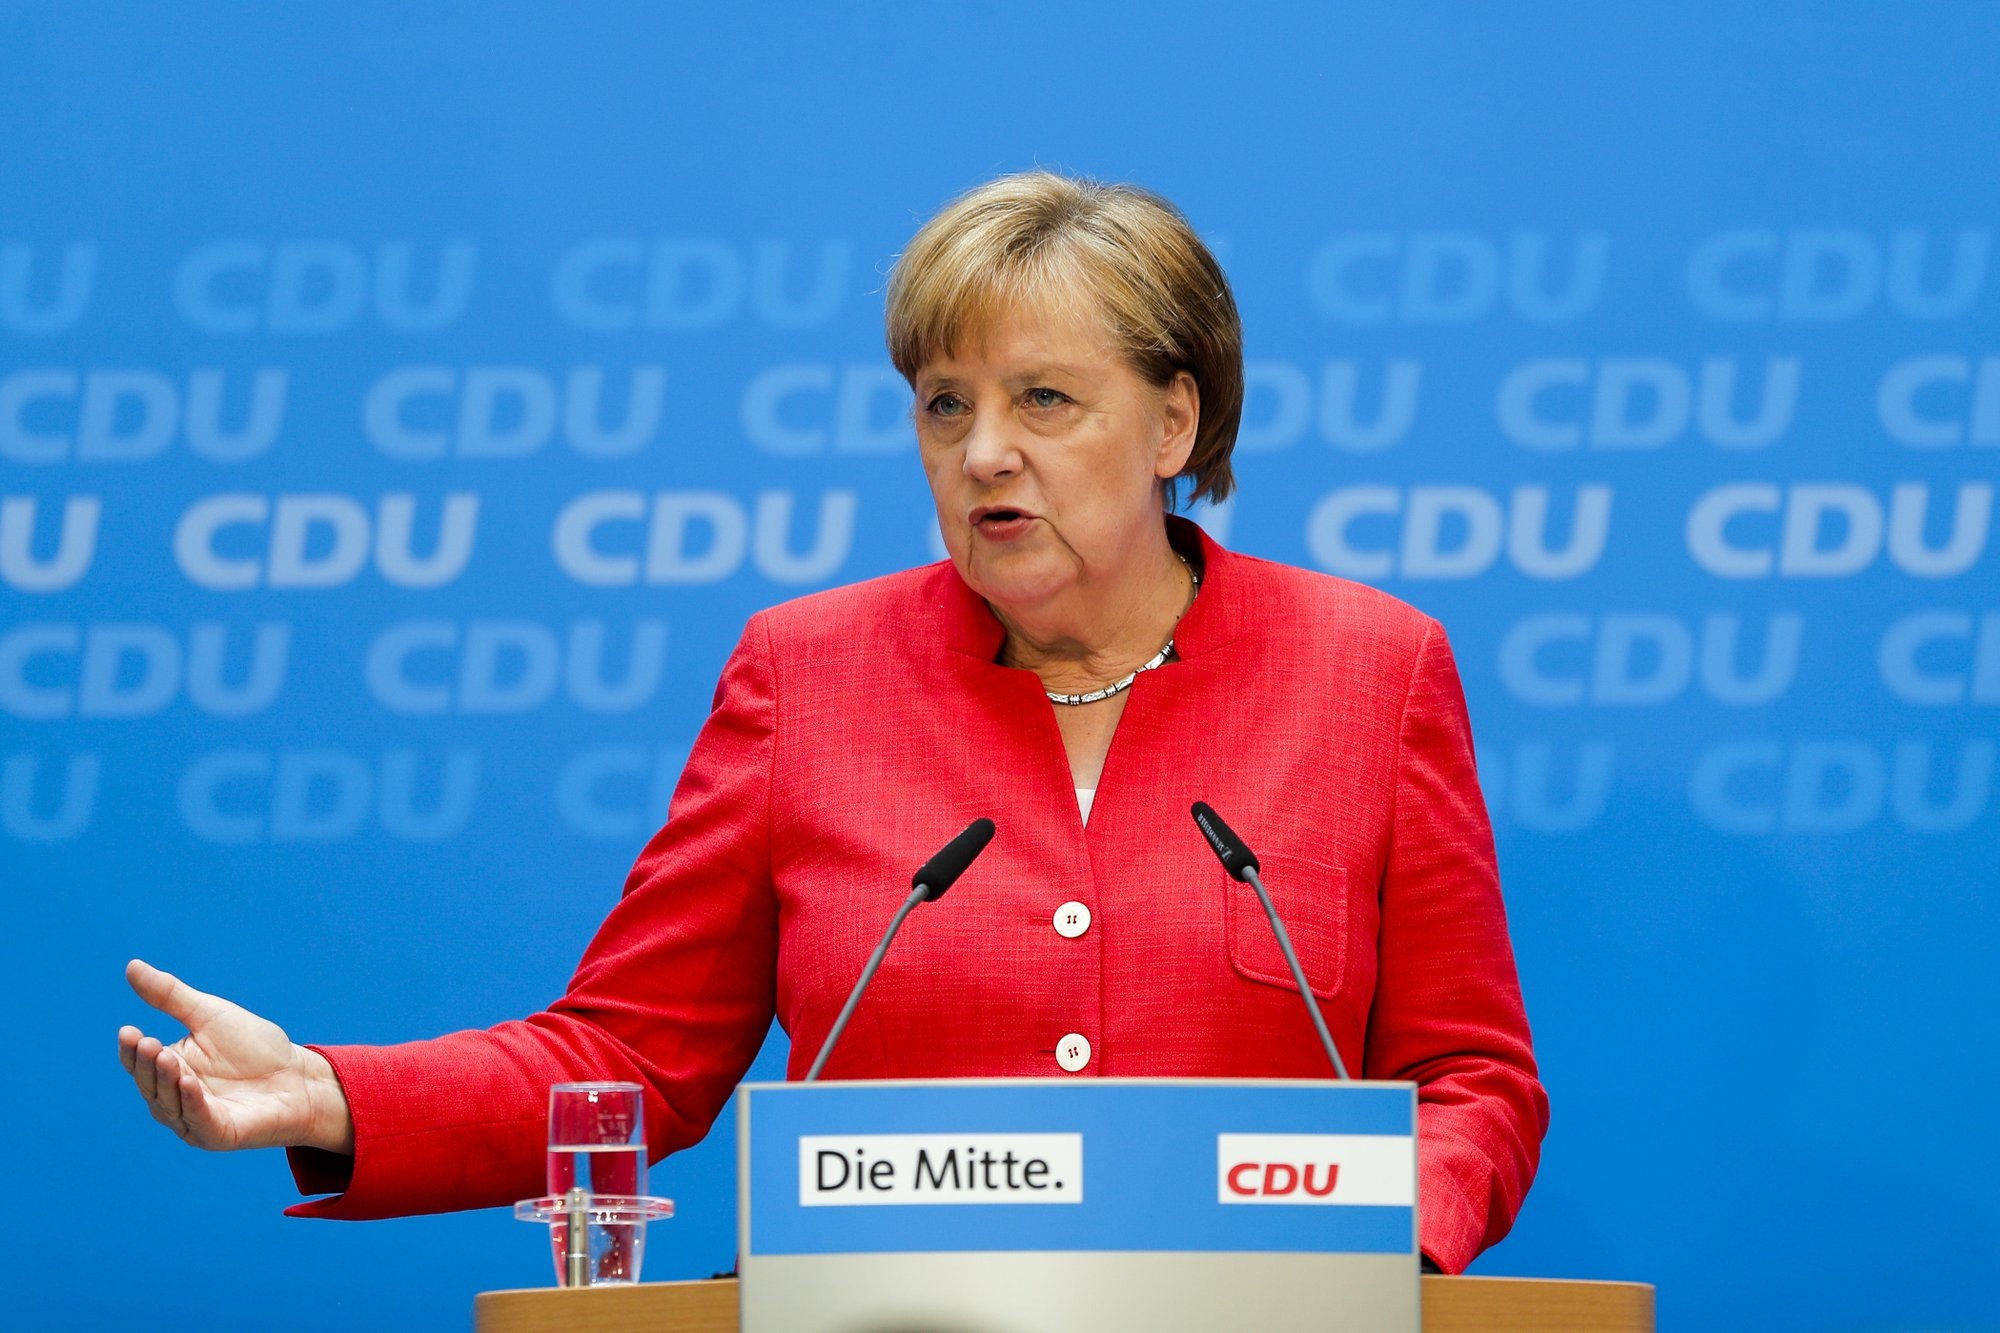 Large majority of Germans want CDU to hold course adopted by Merkel